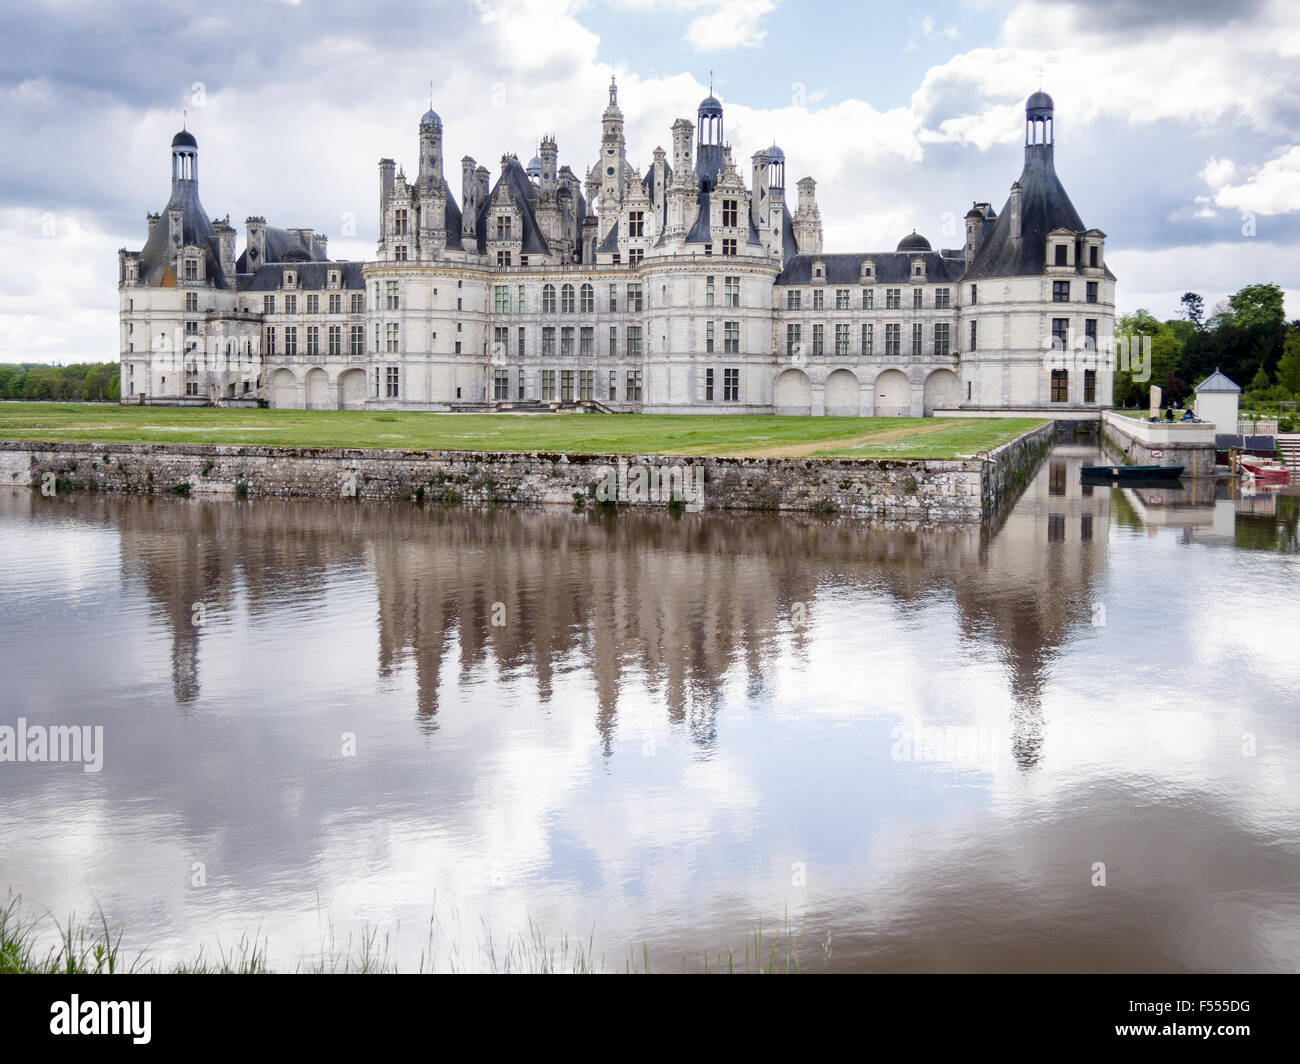 Chambord and its Canal Reflection. The huge Chateau of Chambord including its reflection in the canal at the rear. - Stock Image